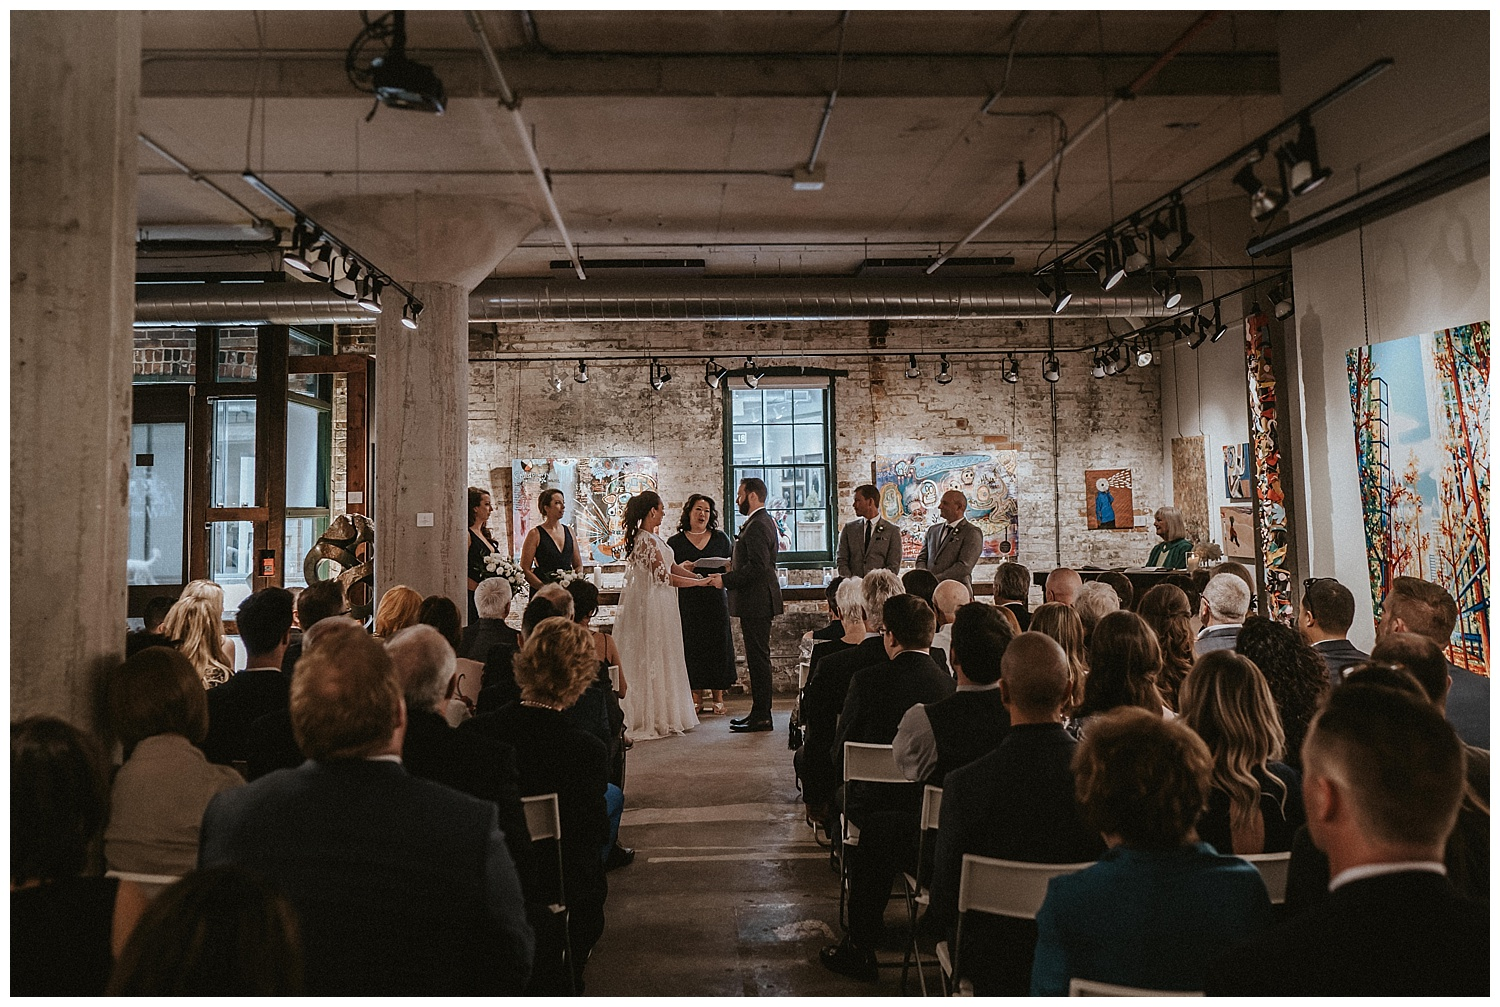 Katie Marie Photography | Archeo Wedding Arta Gallery Wedding | Distillery District Wedding | Toronto Wedding Photographer | Hamilton Toronto Ontario Wedding Photographer |_0104.jpg